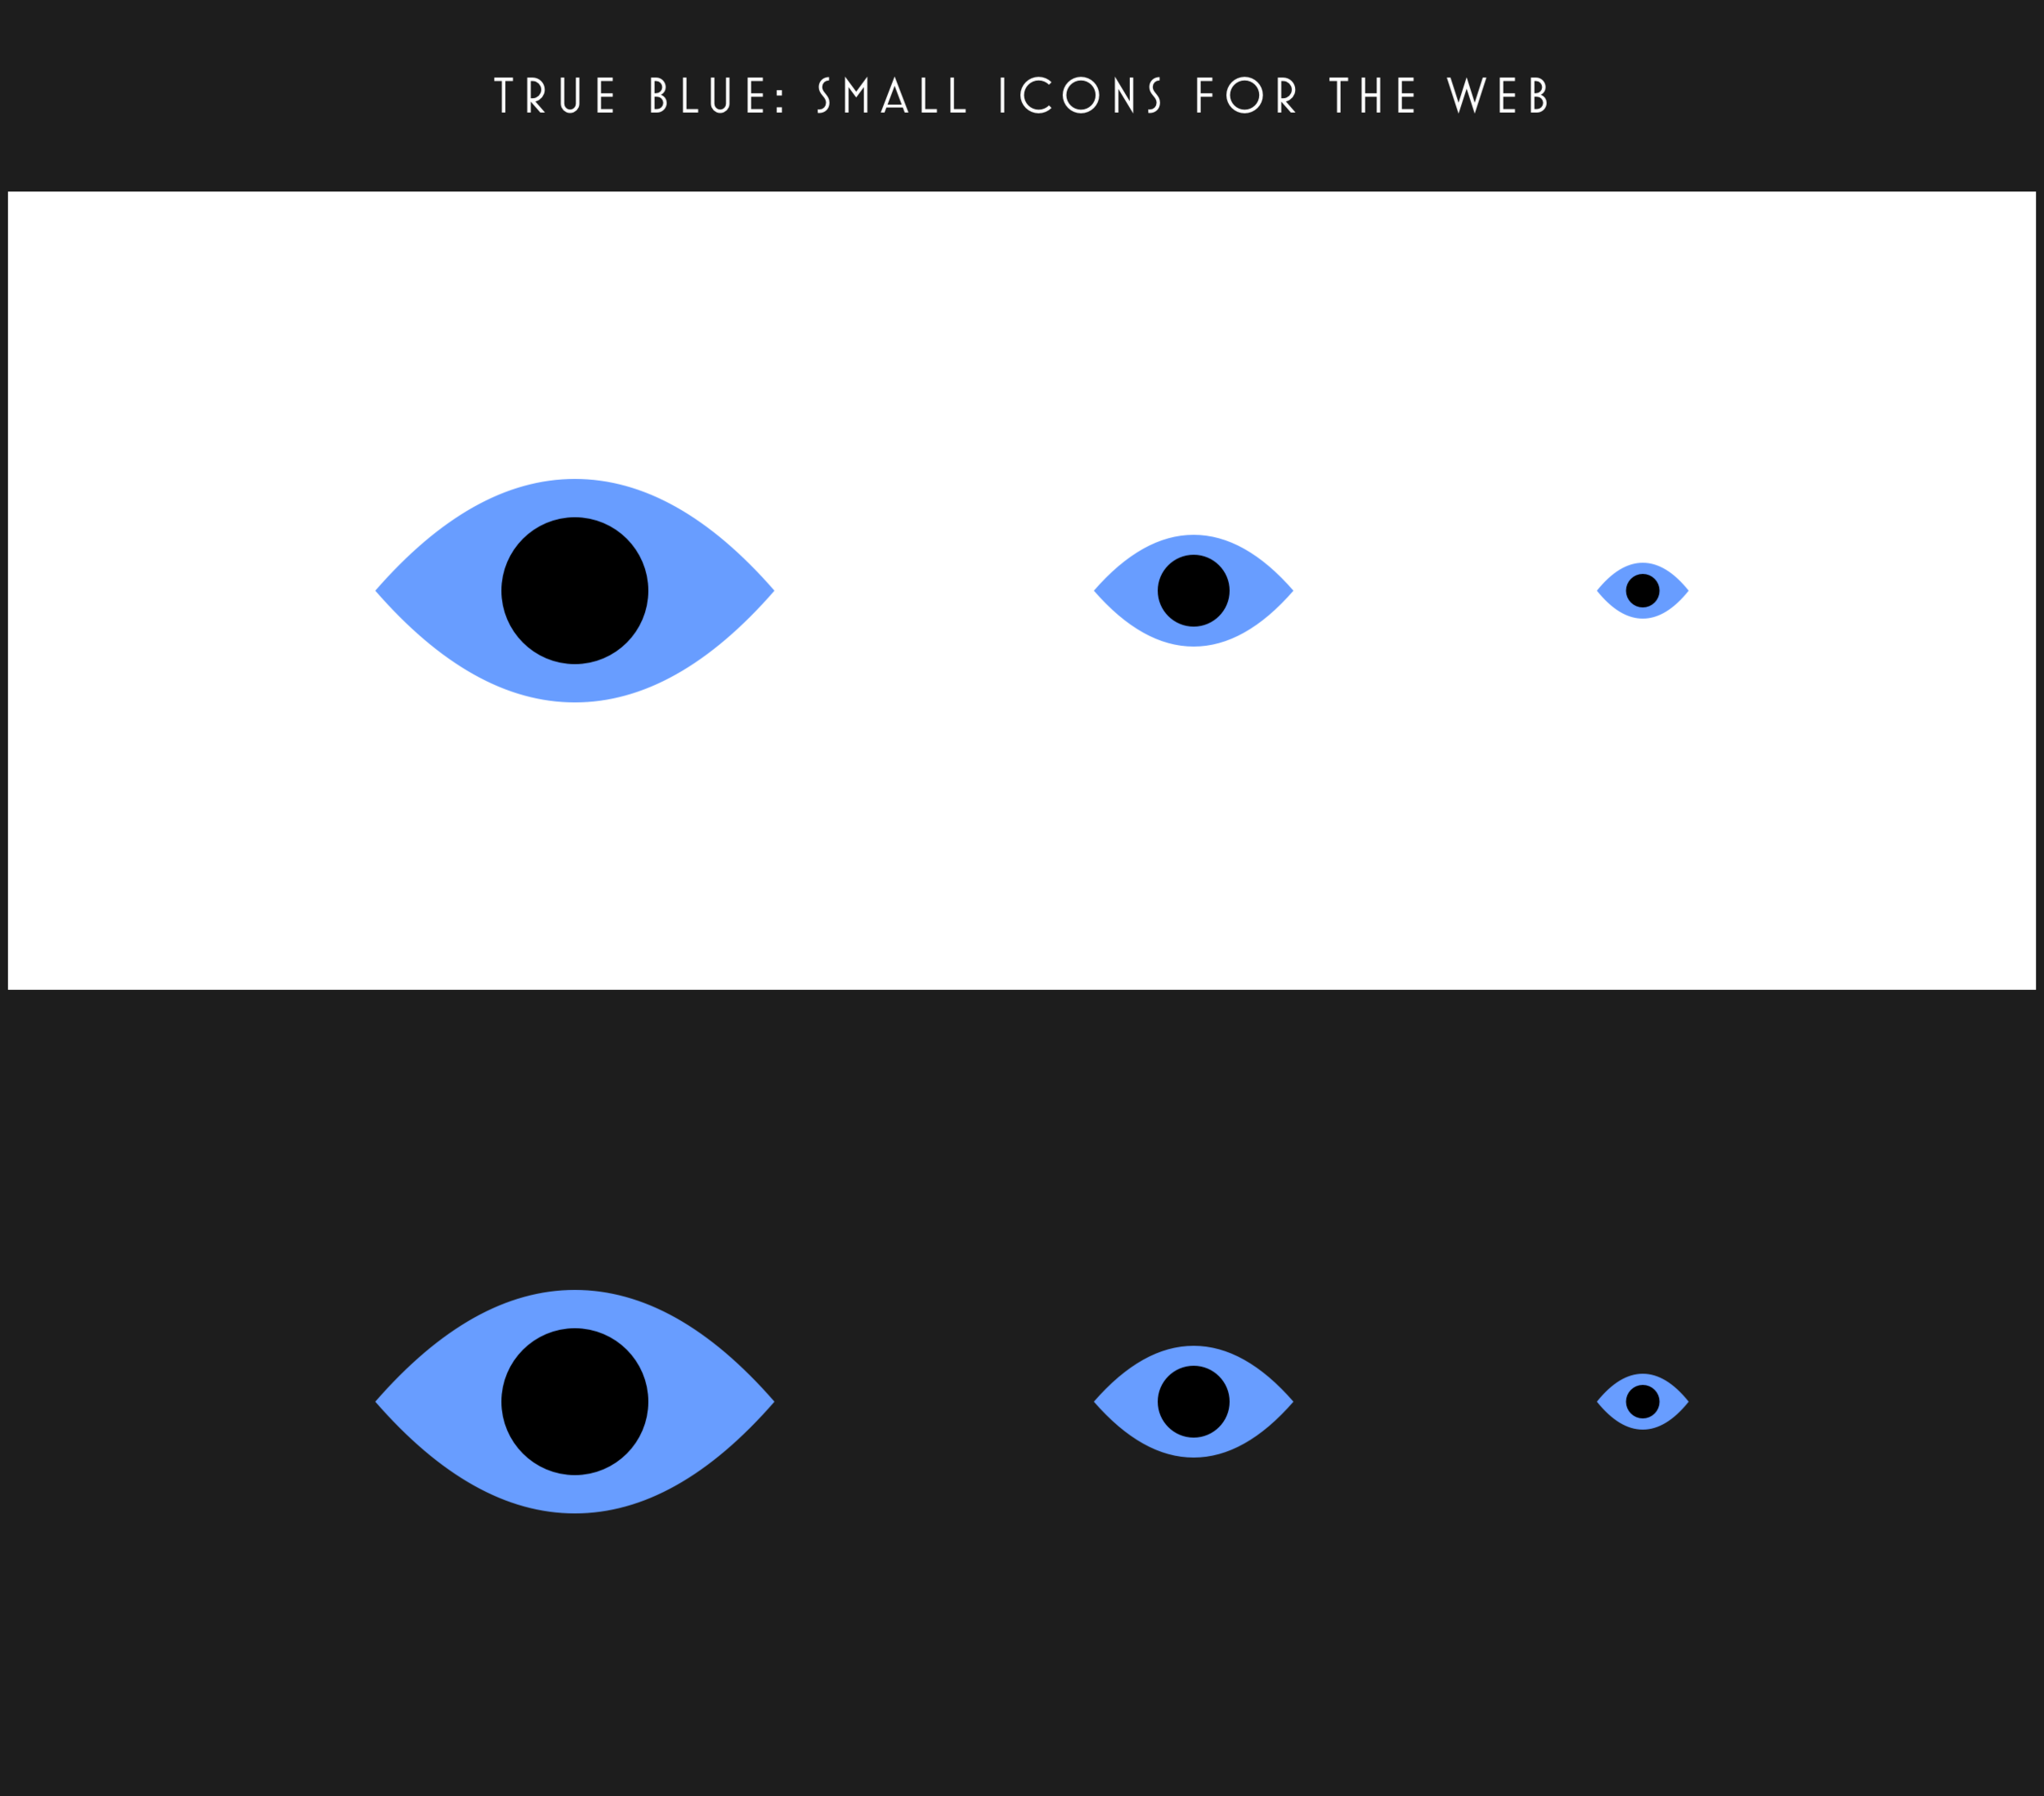 TB Small Icons Sample@2x.png